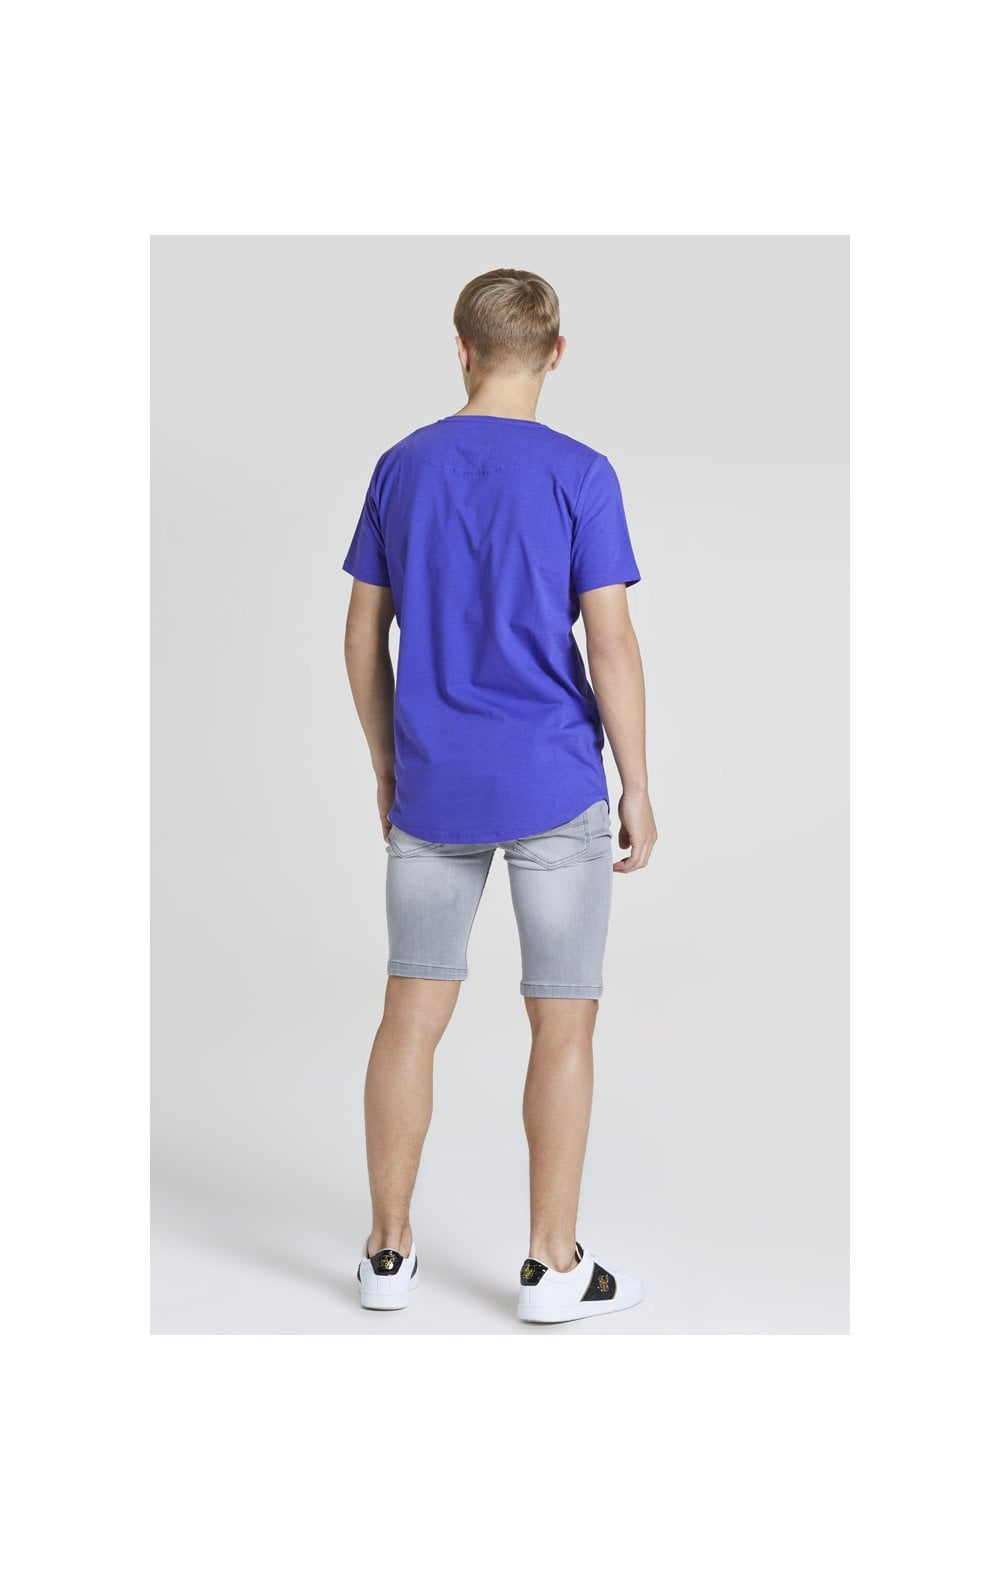 Illusive London Core Tee - Purple (4)